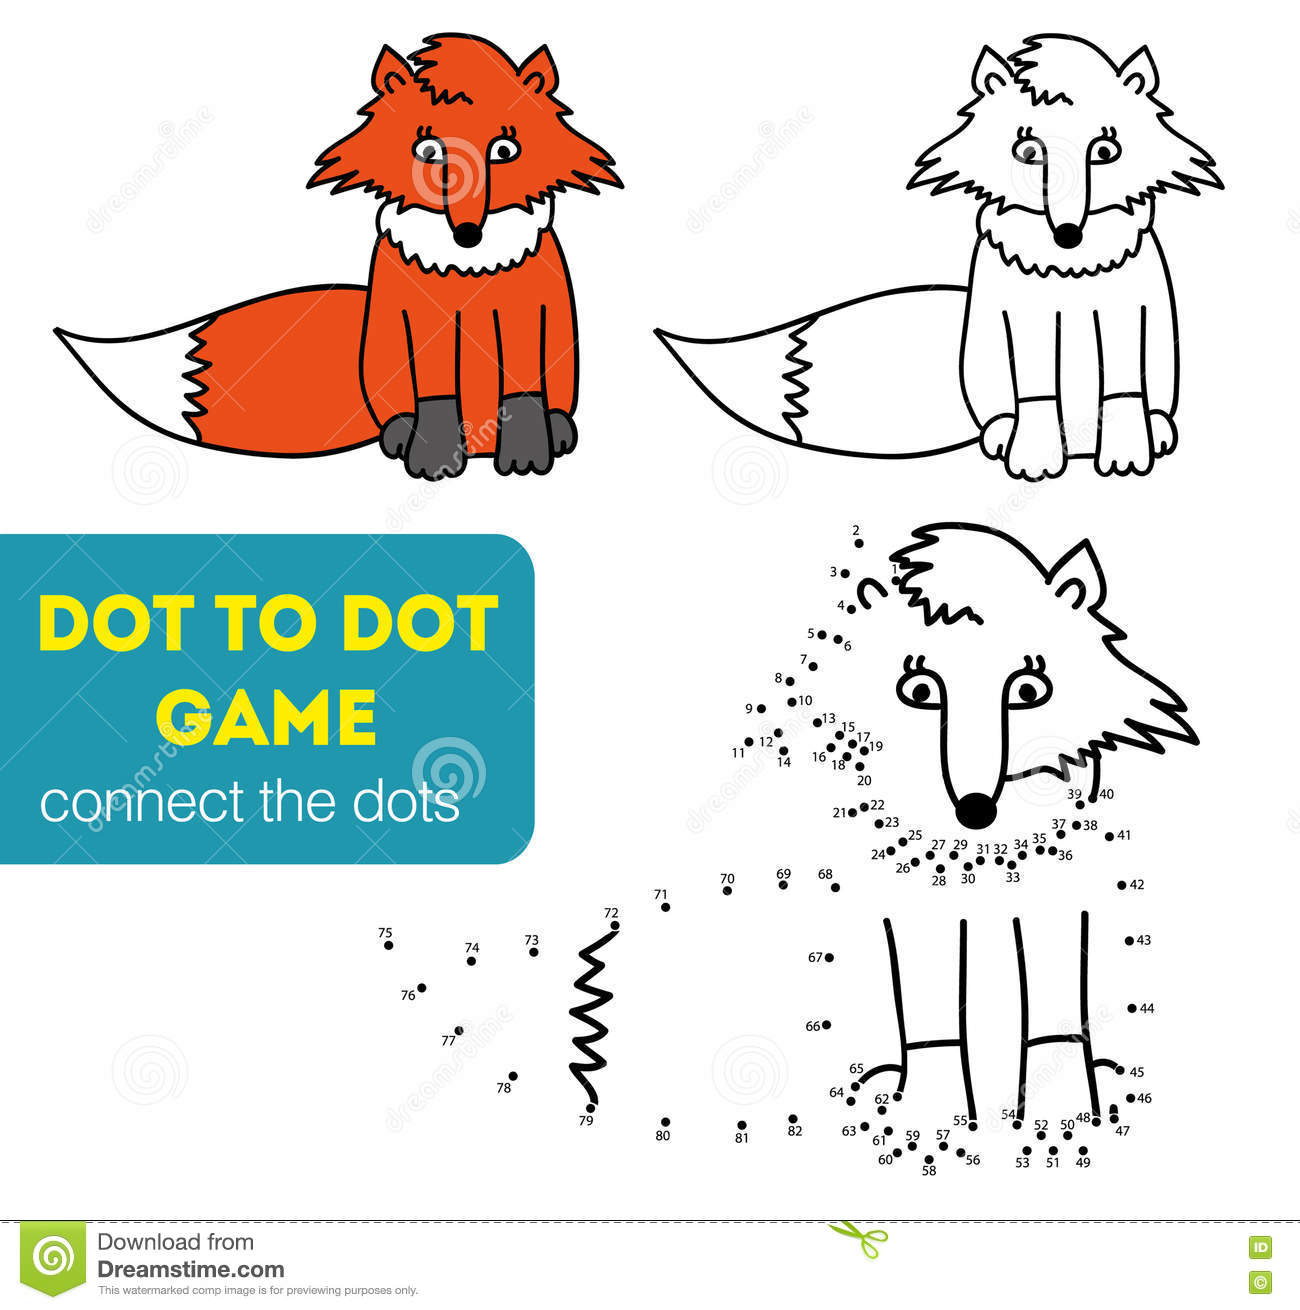 dot to dot games coloring and dot to dot educational game for